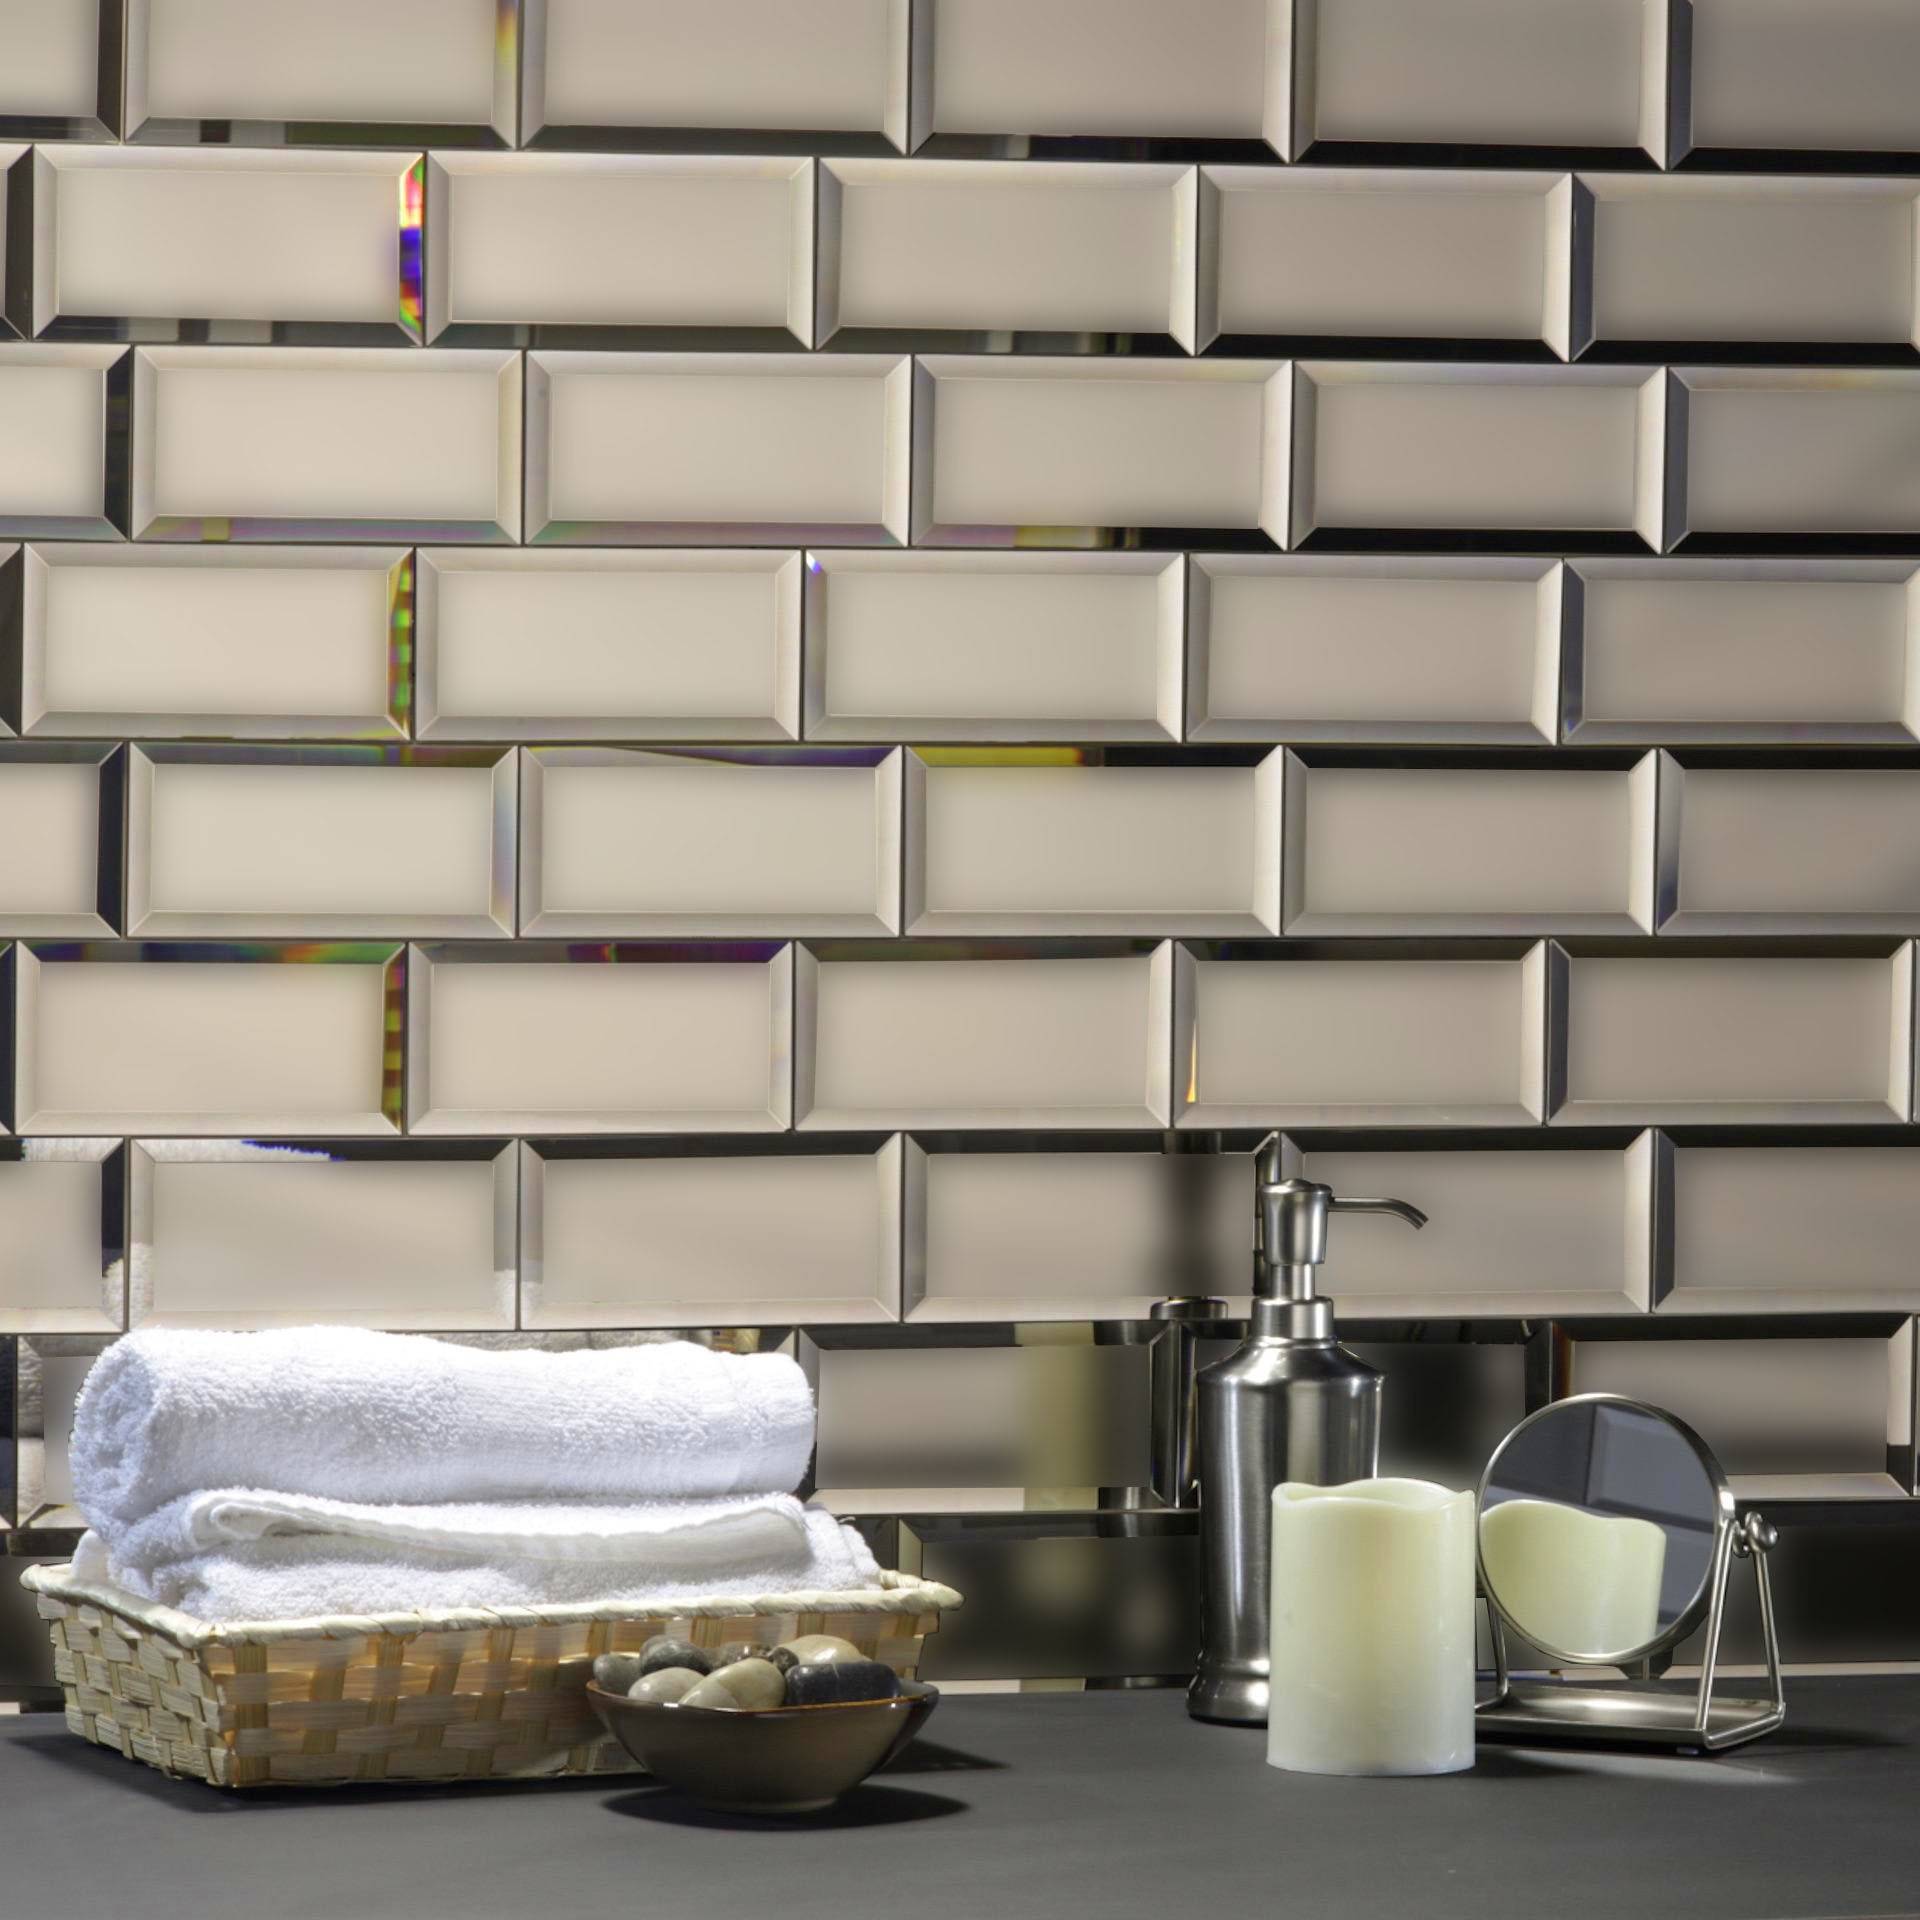 "Reflections 3"" x 6"" Matte Gold Mirror Subway Backsplash Wall Tile"